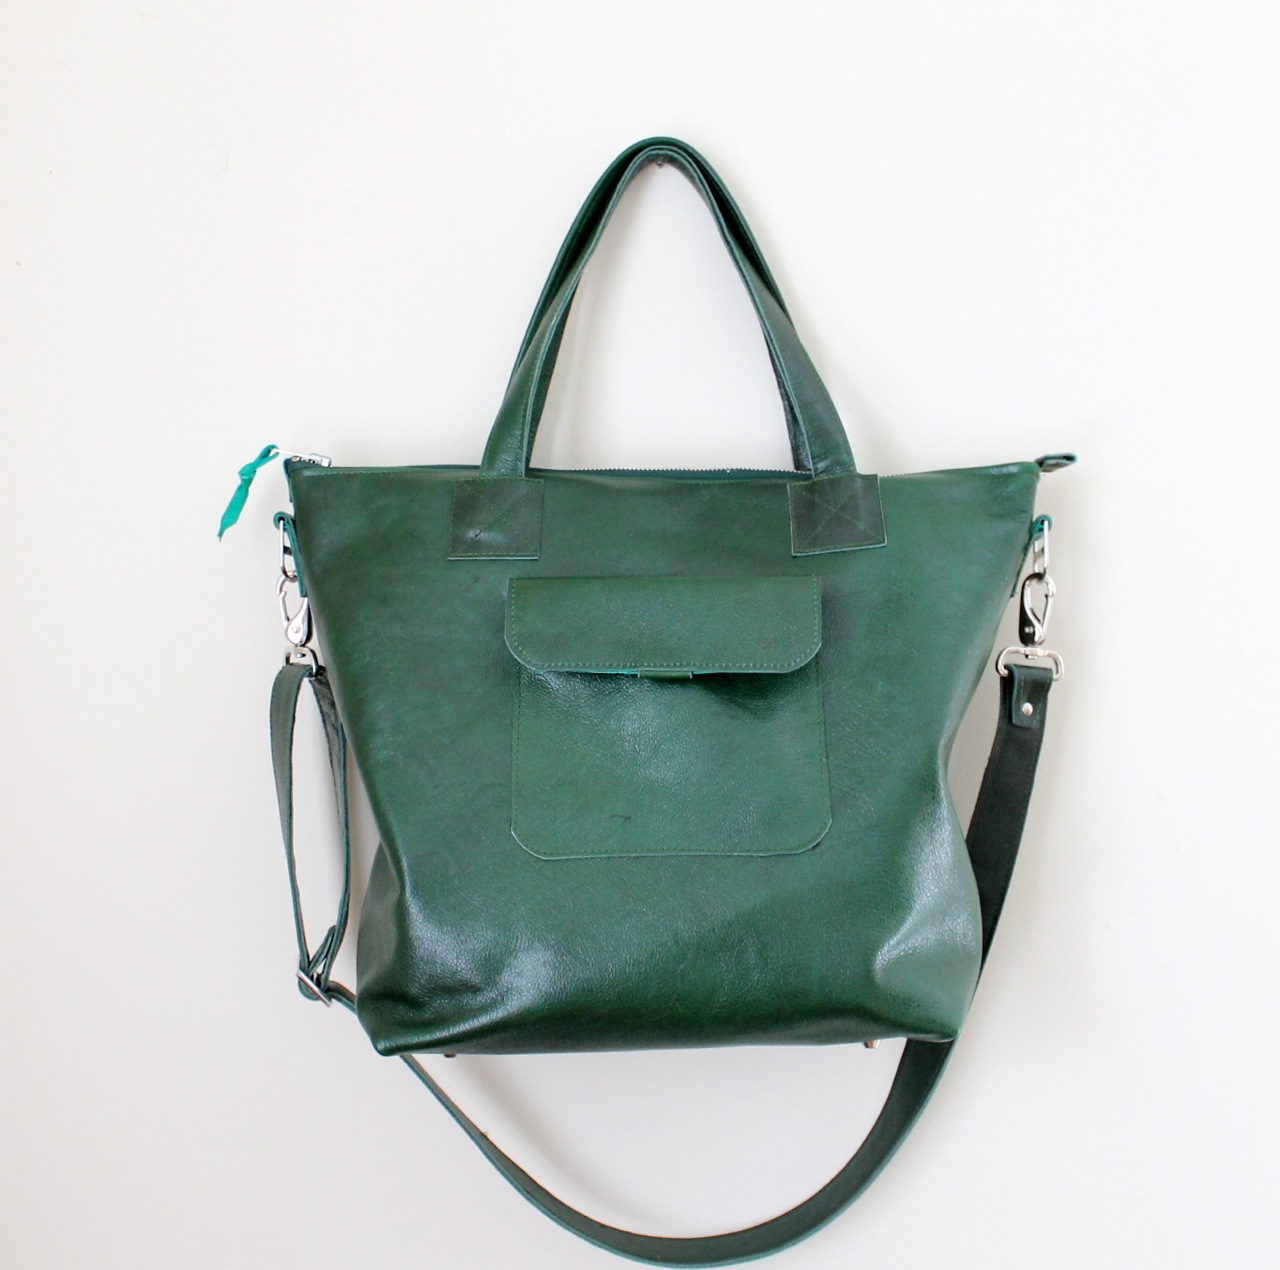 Delta tote in green